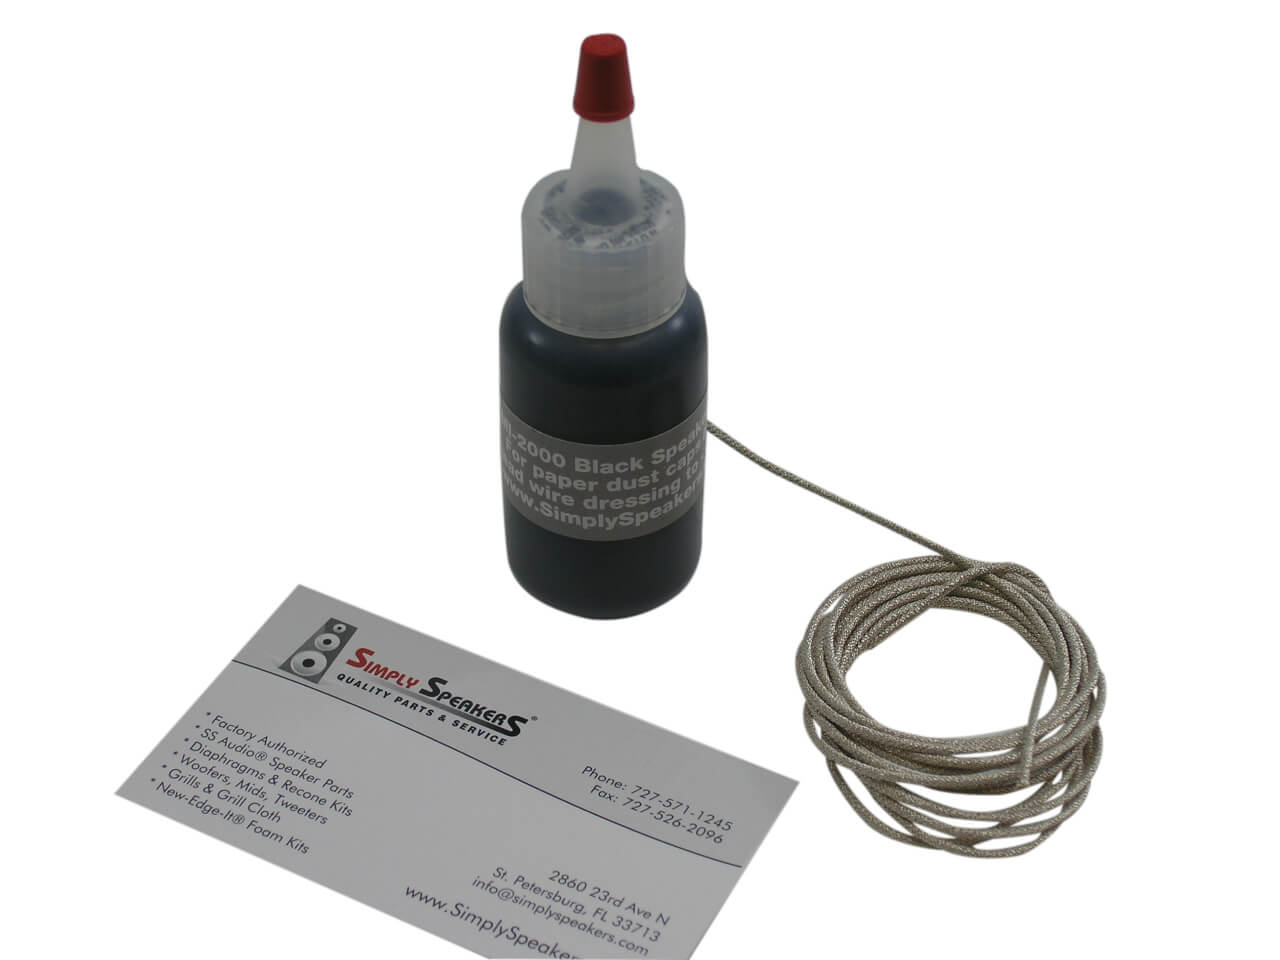 Speaker Lead Wire Repair Kit